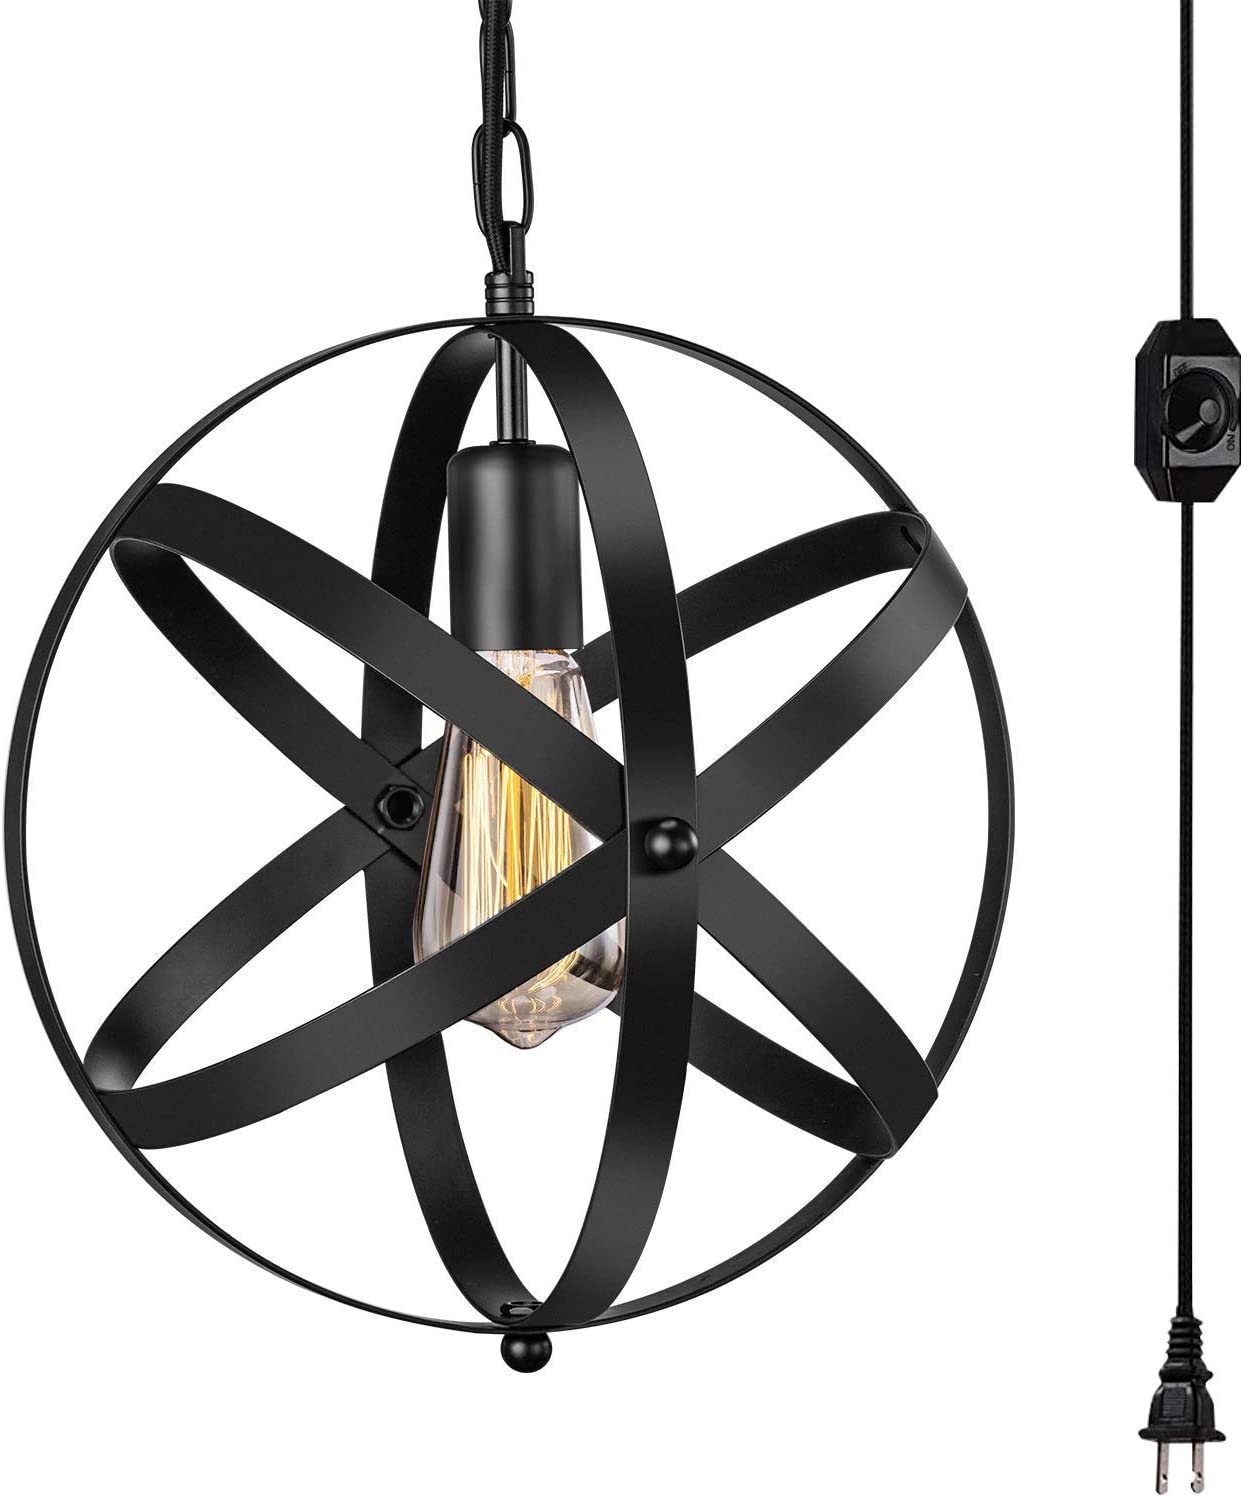 Ganeed Plug in Pendant Light,Industrial Hanging Light Metal Globe Vintage Pendant Light Fixture with Hanging Cord and On Off Switch for Kitchen Island Bedroom Farmhouse